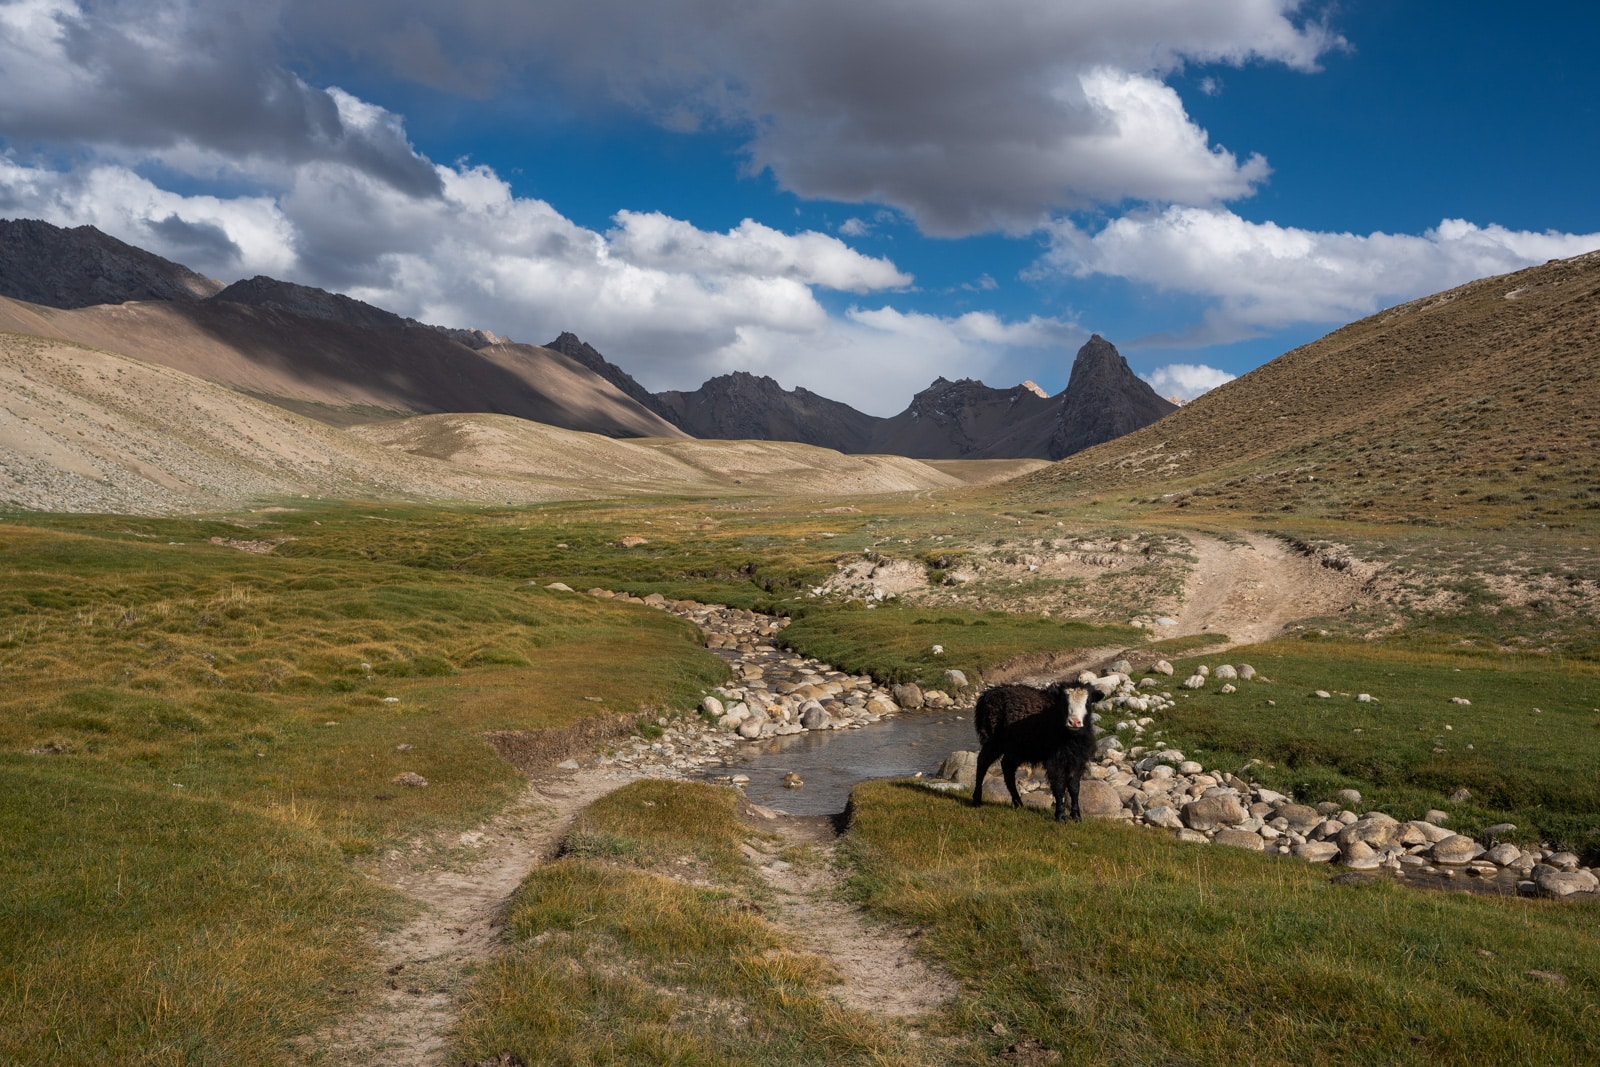 Baby yak in the Pamir Mountains of Eastern Tajikistan